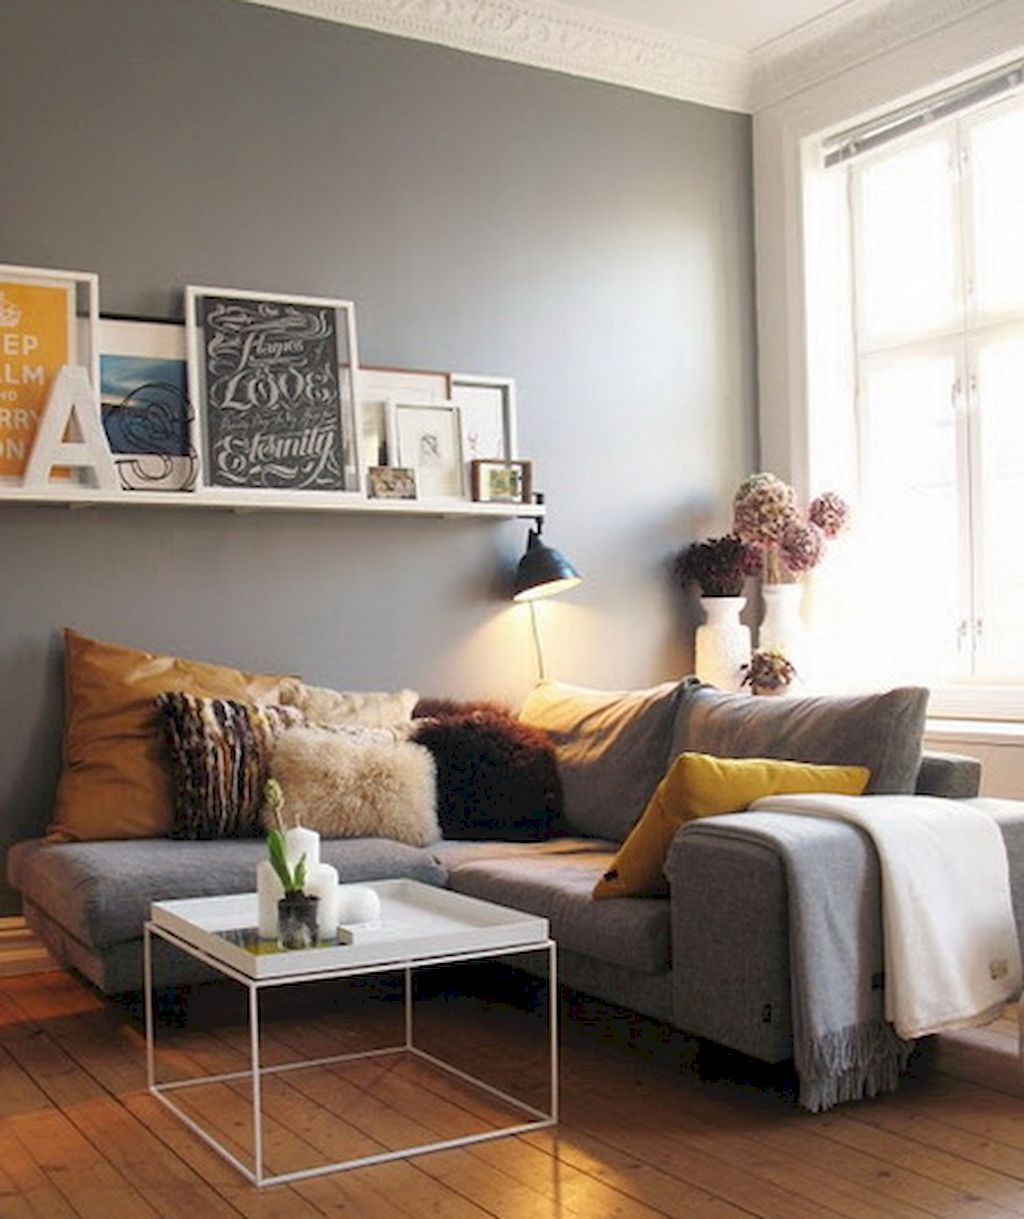 Living Room Design On A Budget Awesome Beautiful And Cute Apartment Decorating Ideas On A Budget 36 Inspiration